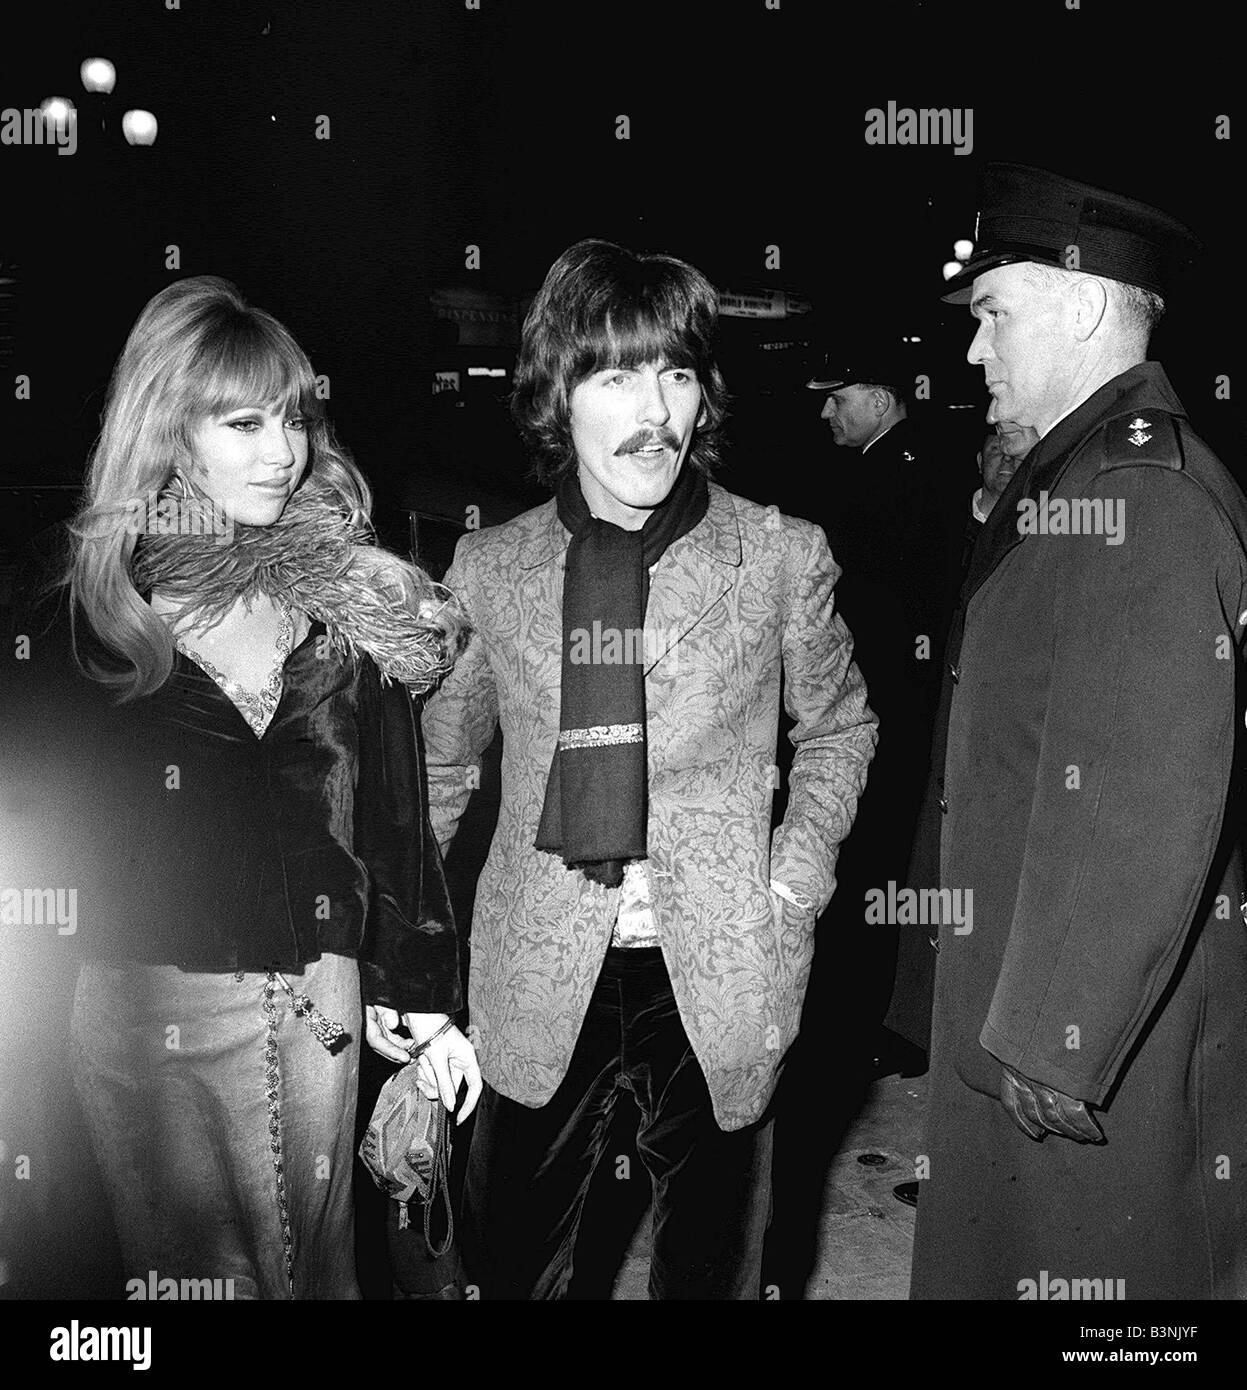 The Beatles October 1967 George Harrison Attending A Film Premiere In London With Wife Patti Boyd